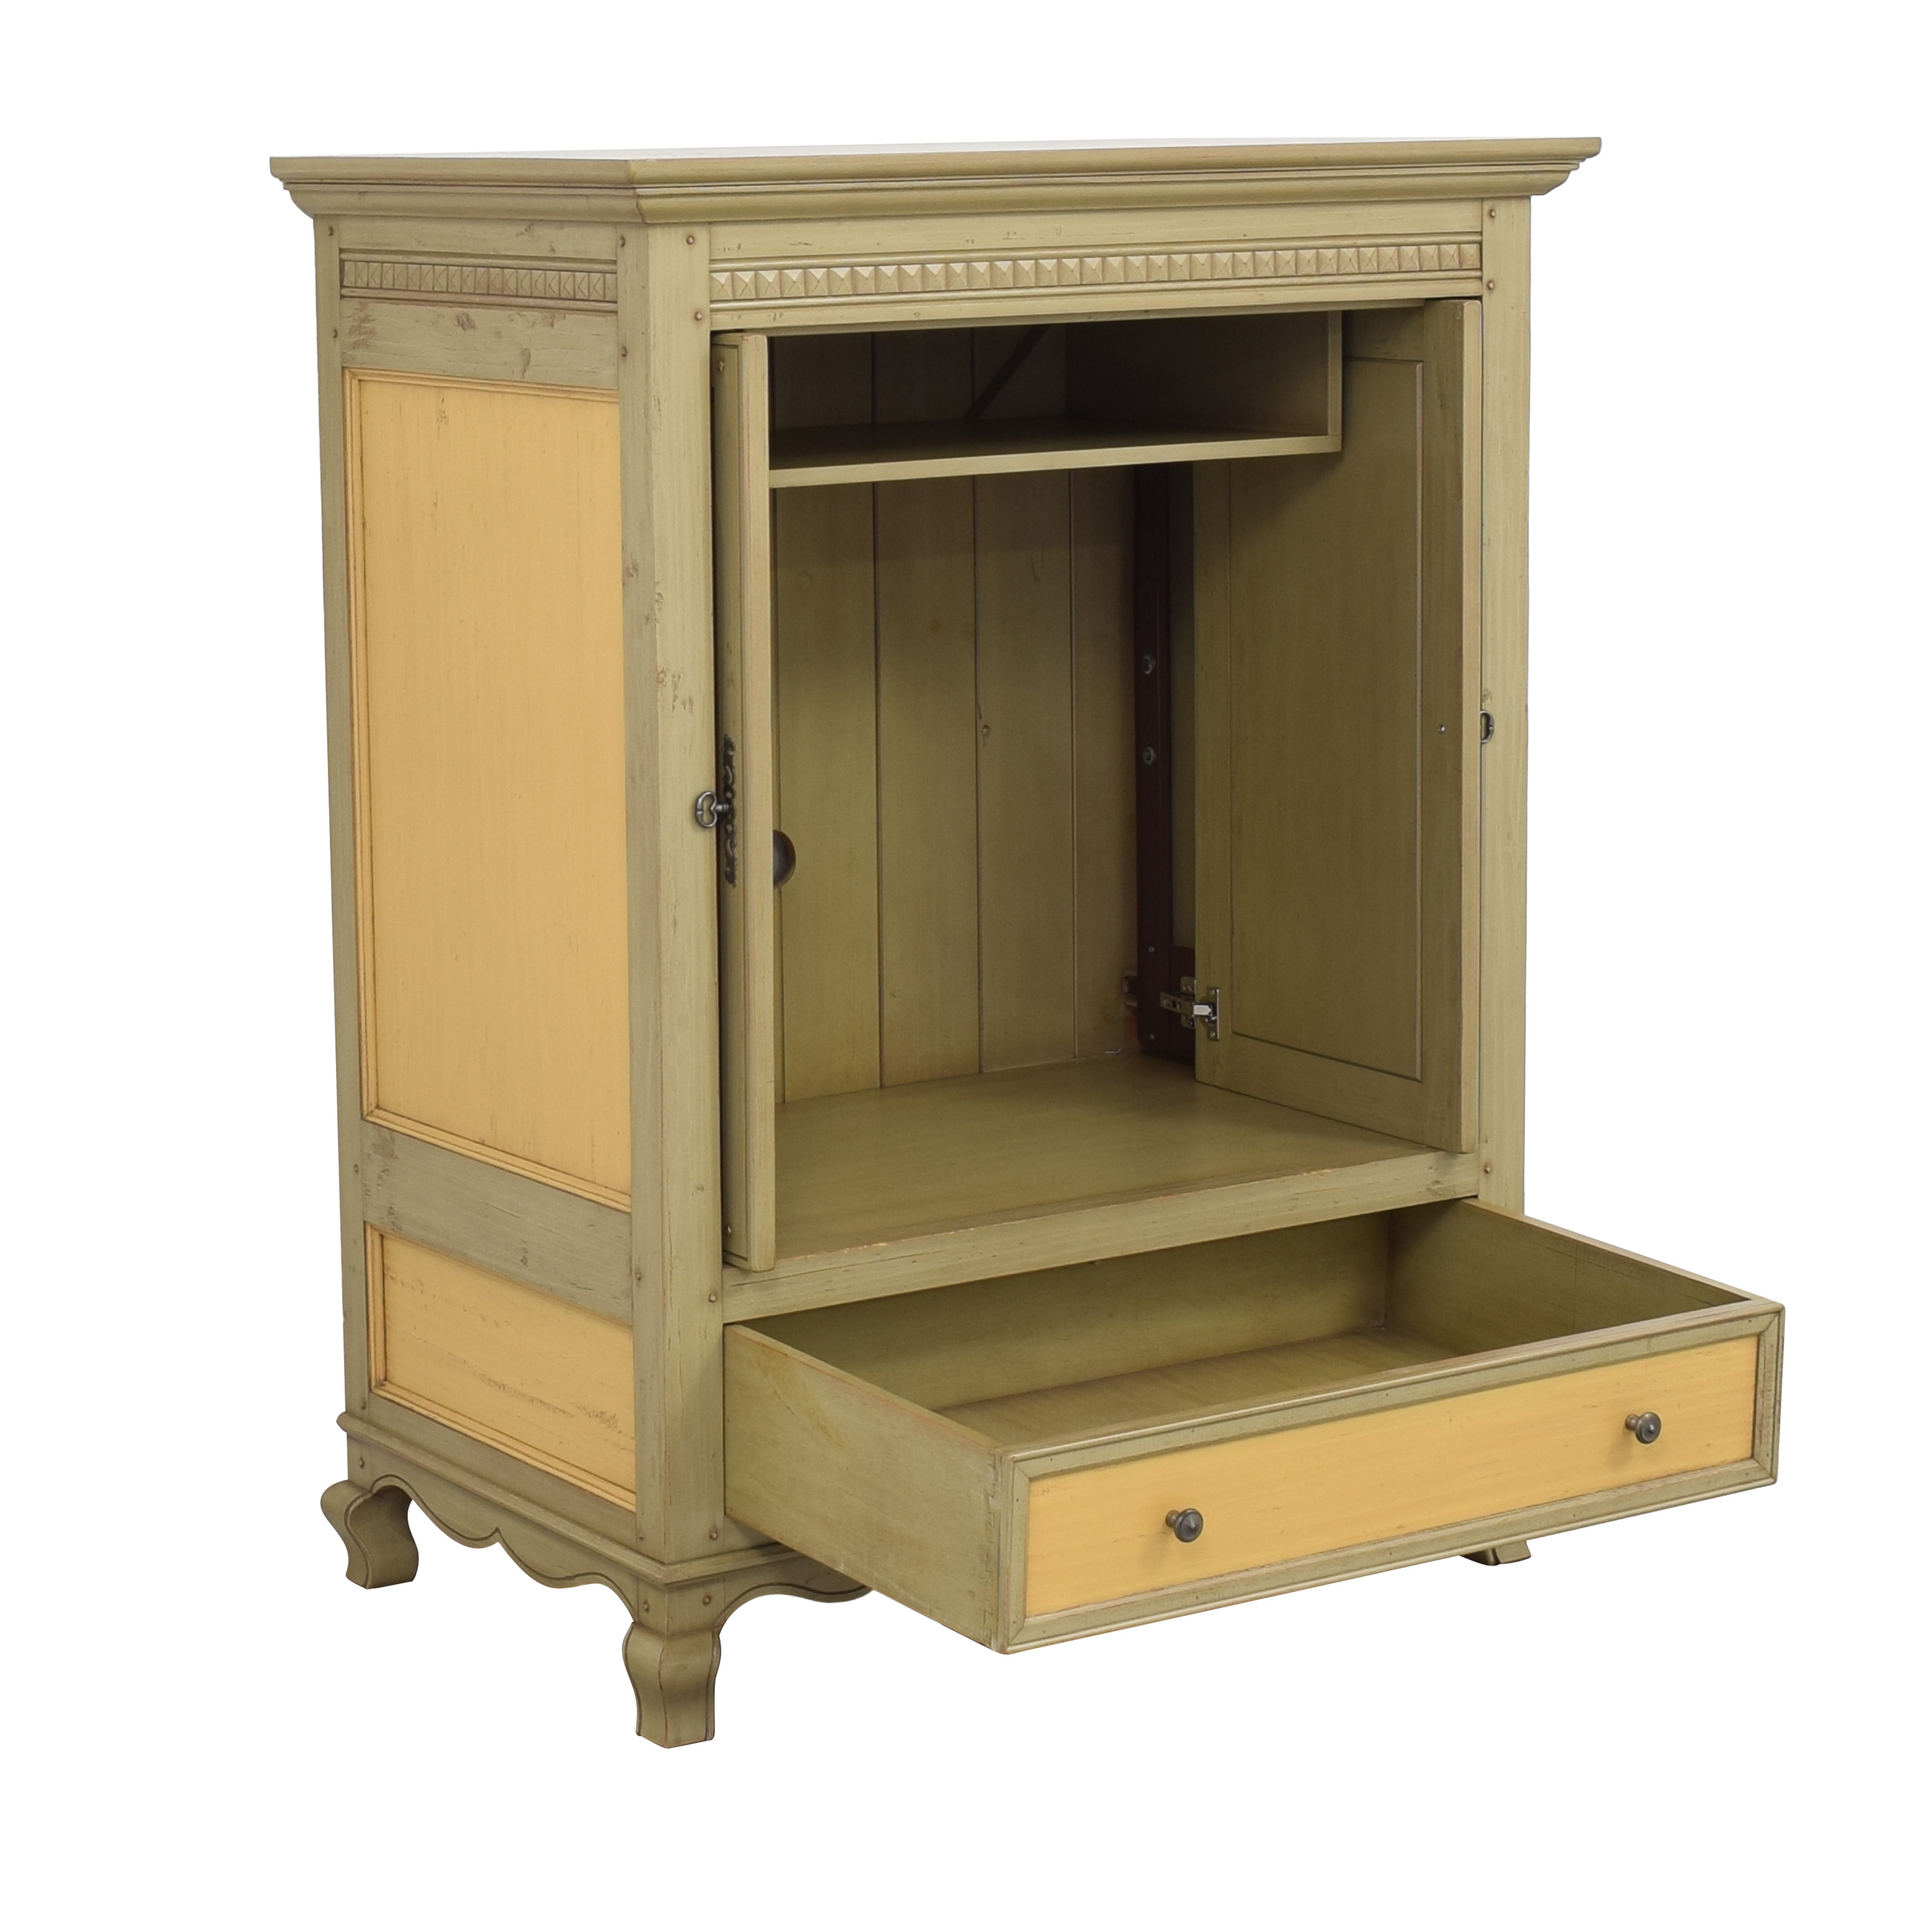 buy Sumter Cabinet Co. Sumter Cabinet Co. Media Armoire online